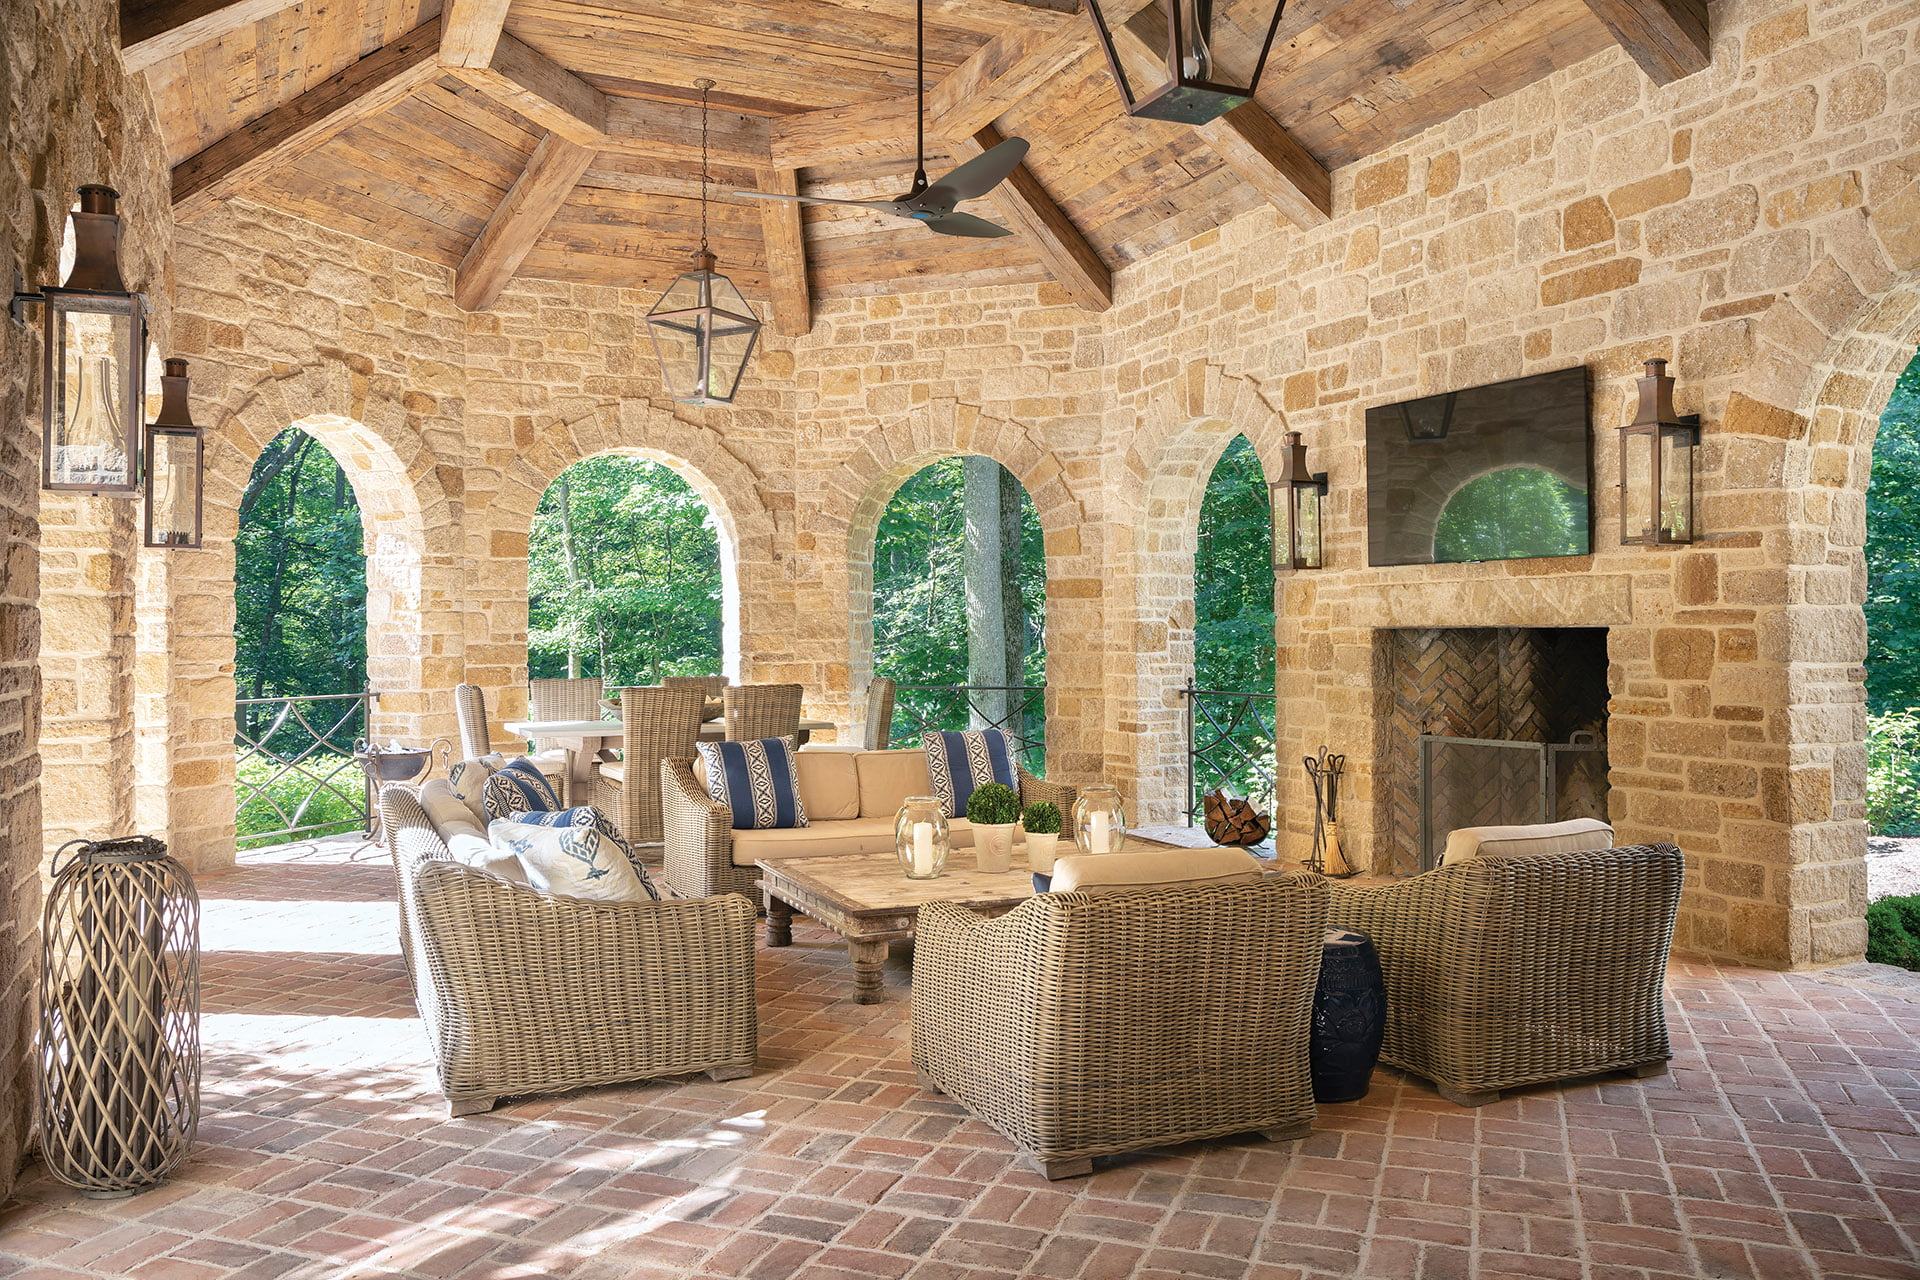 Limestone walls of loggia rise nearly 13 feet to vaulted timber ceiling.